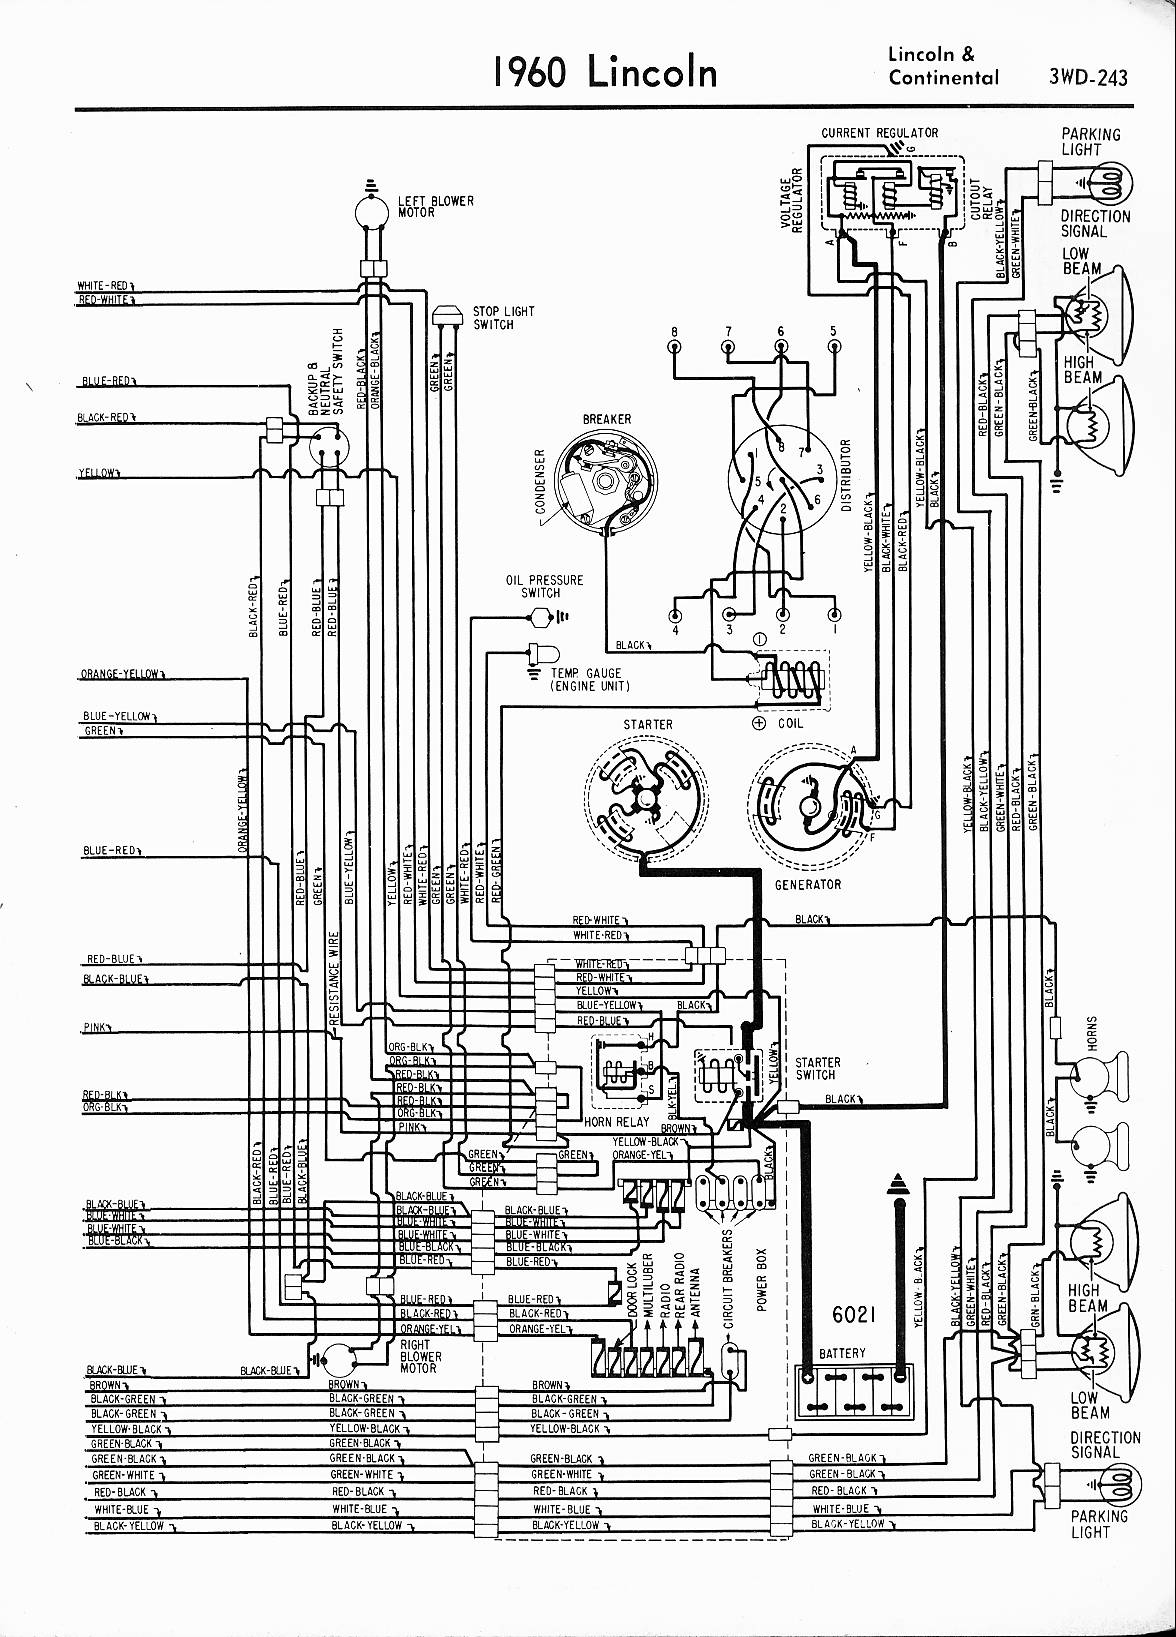 1957 Chevy Power Window Wiring Diagram | Wiring Schematic ... on 89 celebrity wiring diagram, 78 gmc wiring diagram, 89 mustang wiring diagram, 89 camaro wiring diagram, 89 suburban wiring diagram, 97 suburban wiring diagram, maf 2000 blazer diagram, 89 corvette wiring diagram, 2004 taurus wiring diagram, 89 s10 wiring diagram, 89 k1500 wiring diagram, 89 cavalier wiring diagram, 2003 chevy impala wiring diagram, s10 fuse box diagram,